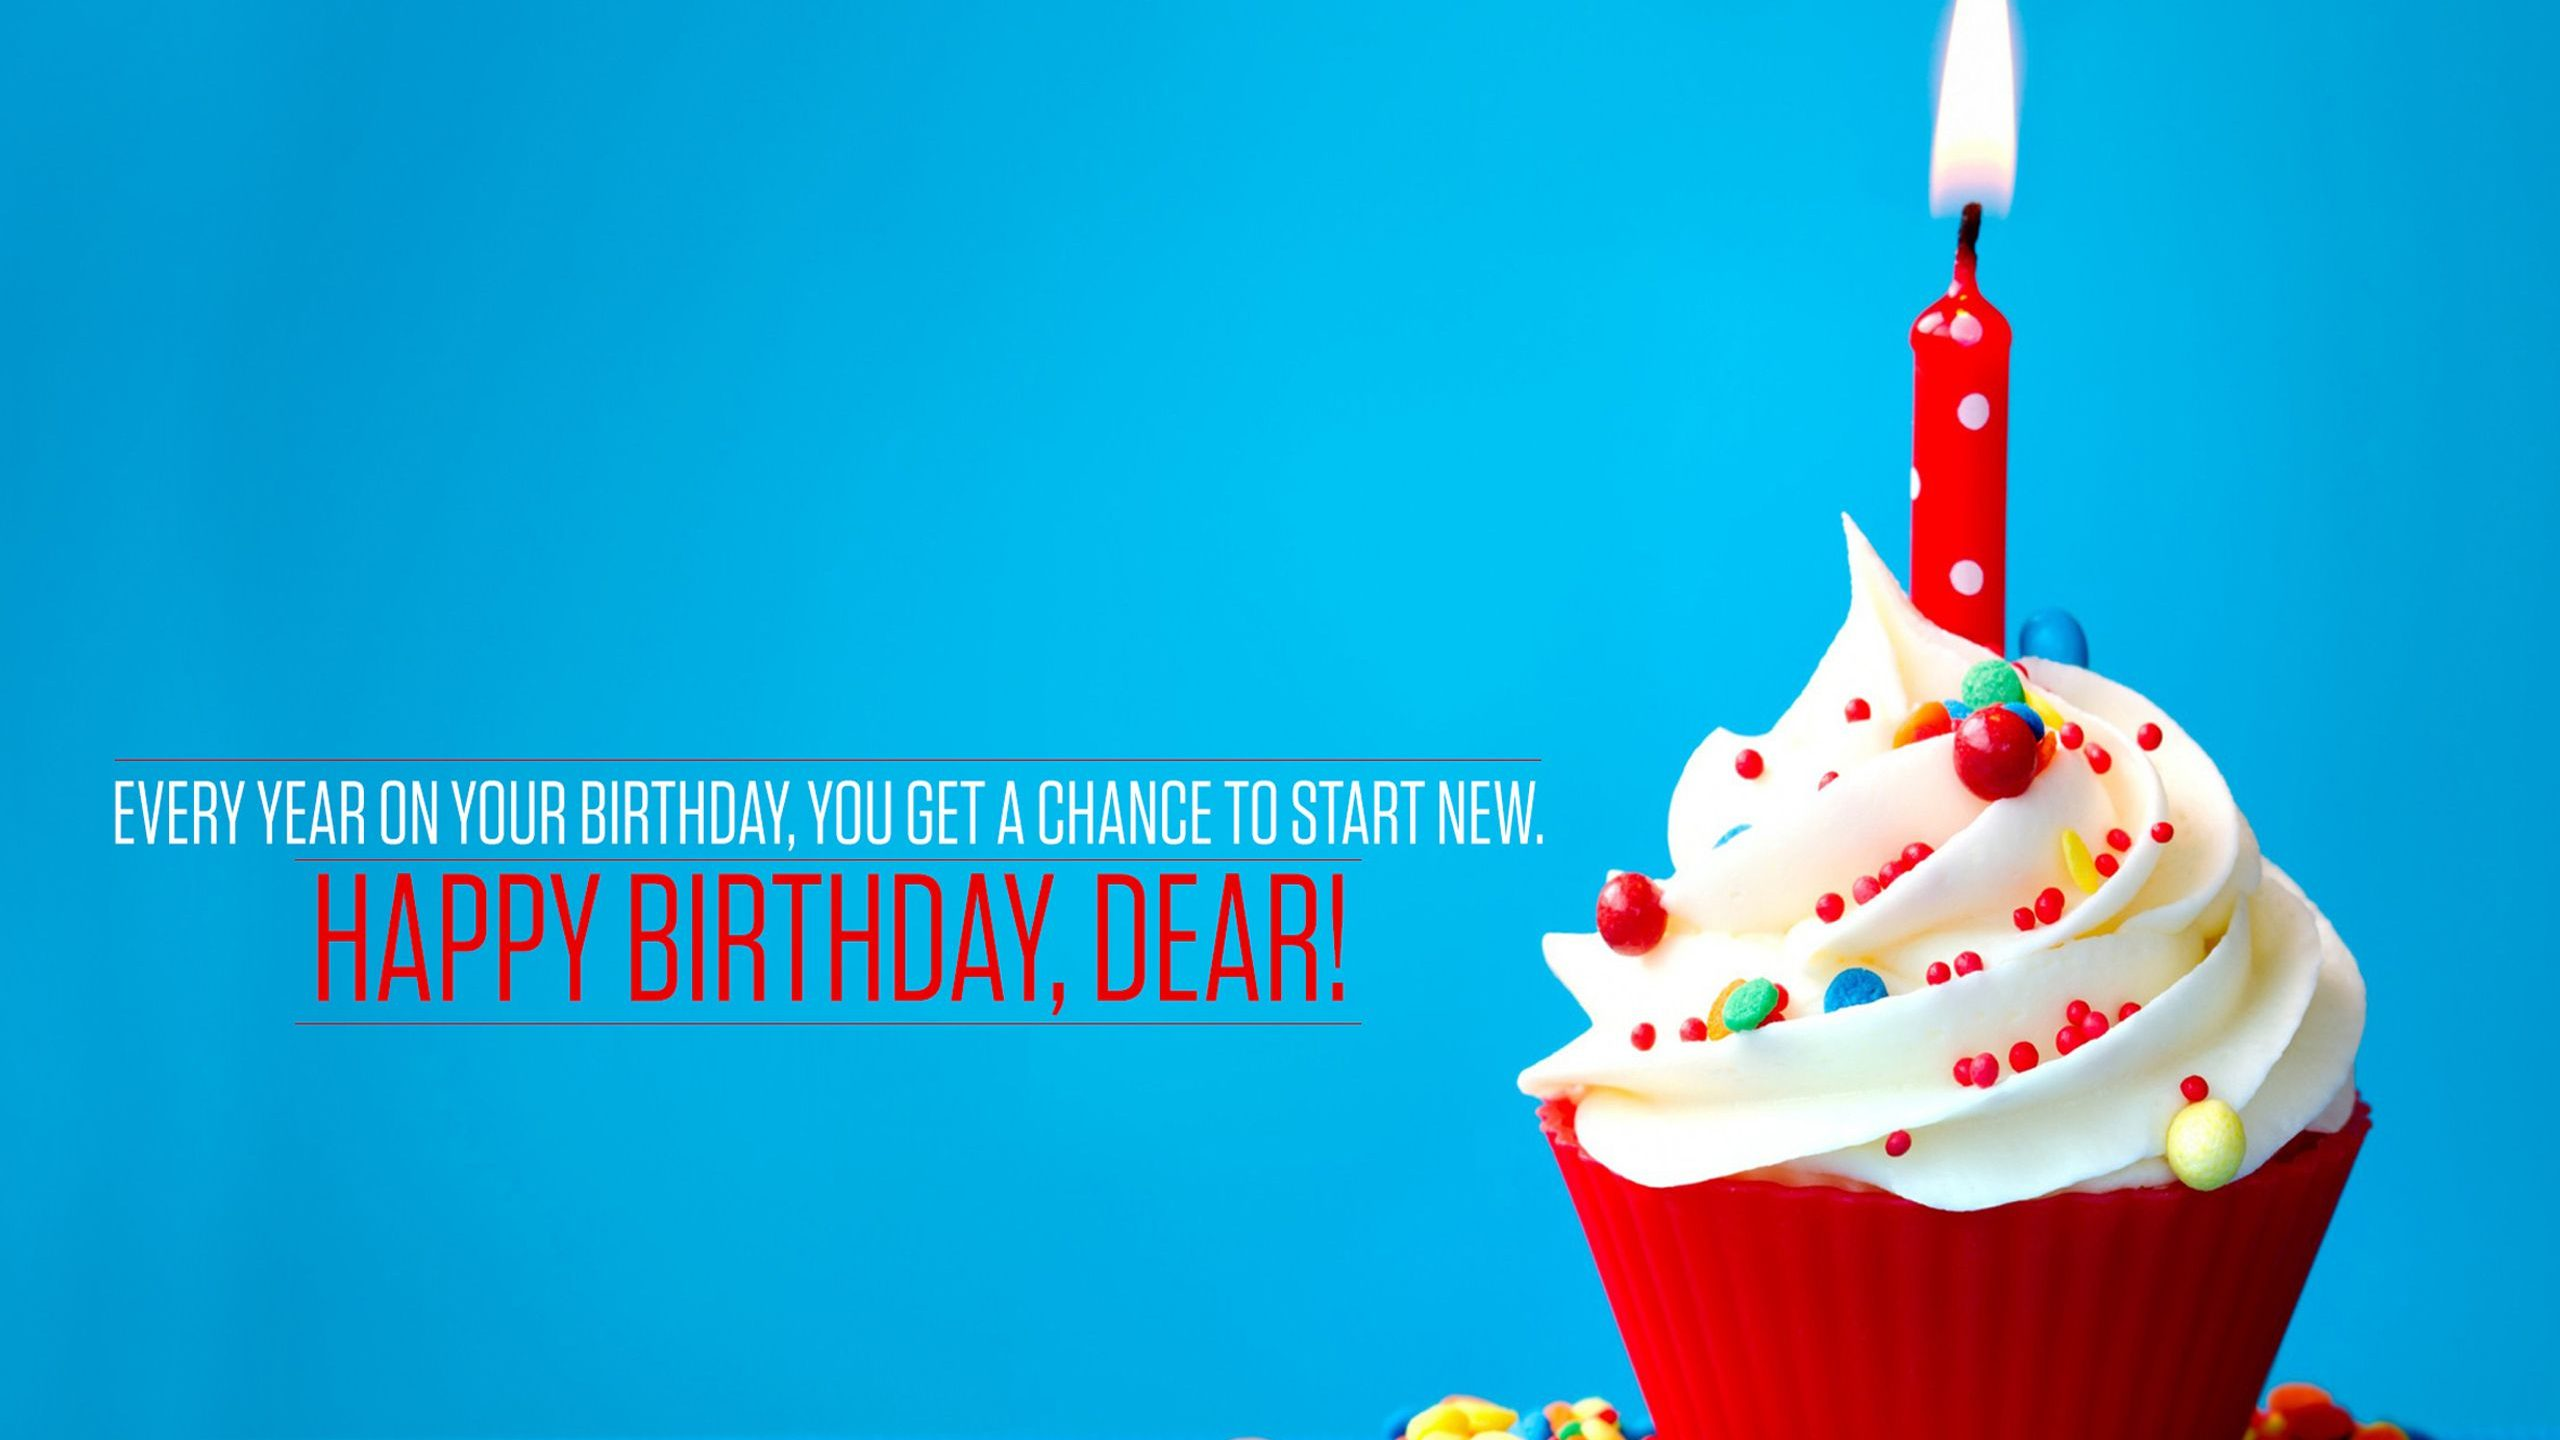 birthday wishes background wallpaper ; HD-Happy-Birthday-Wishes-Wallpaper-2560x1440